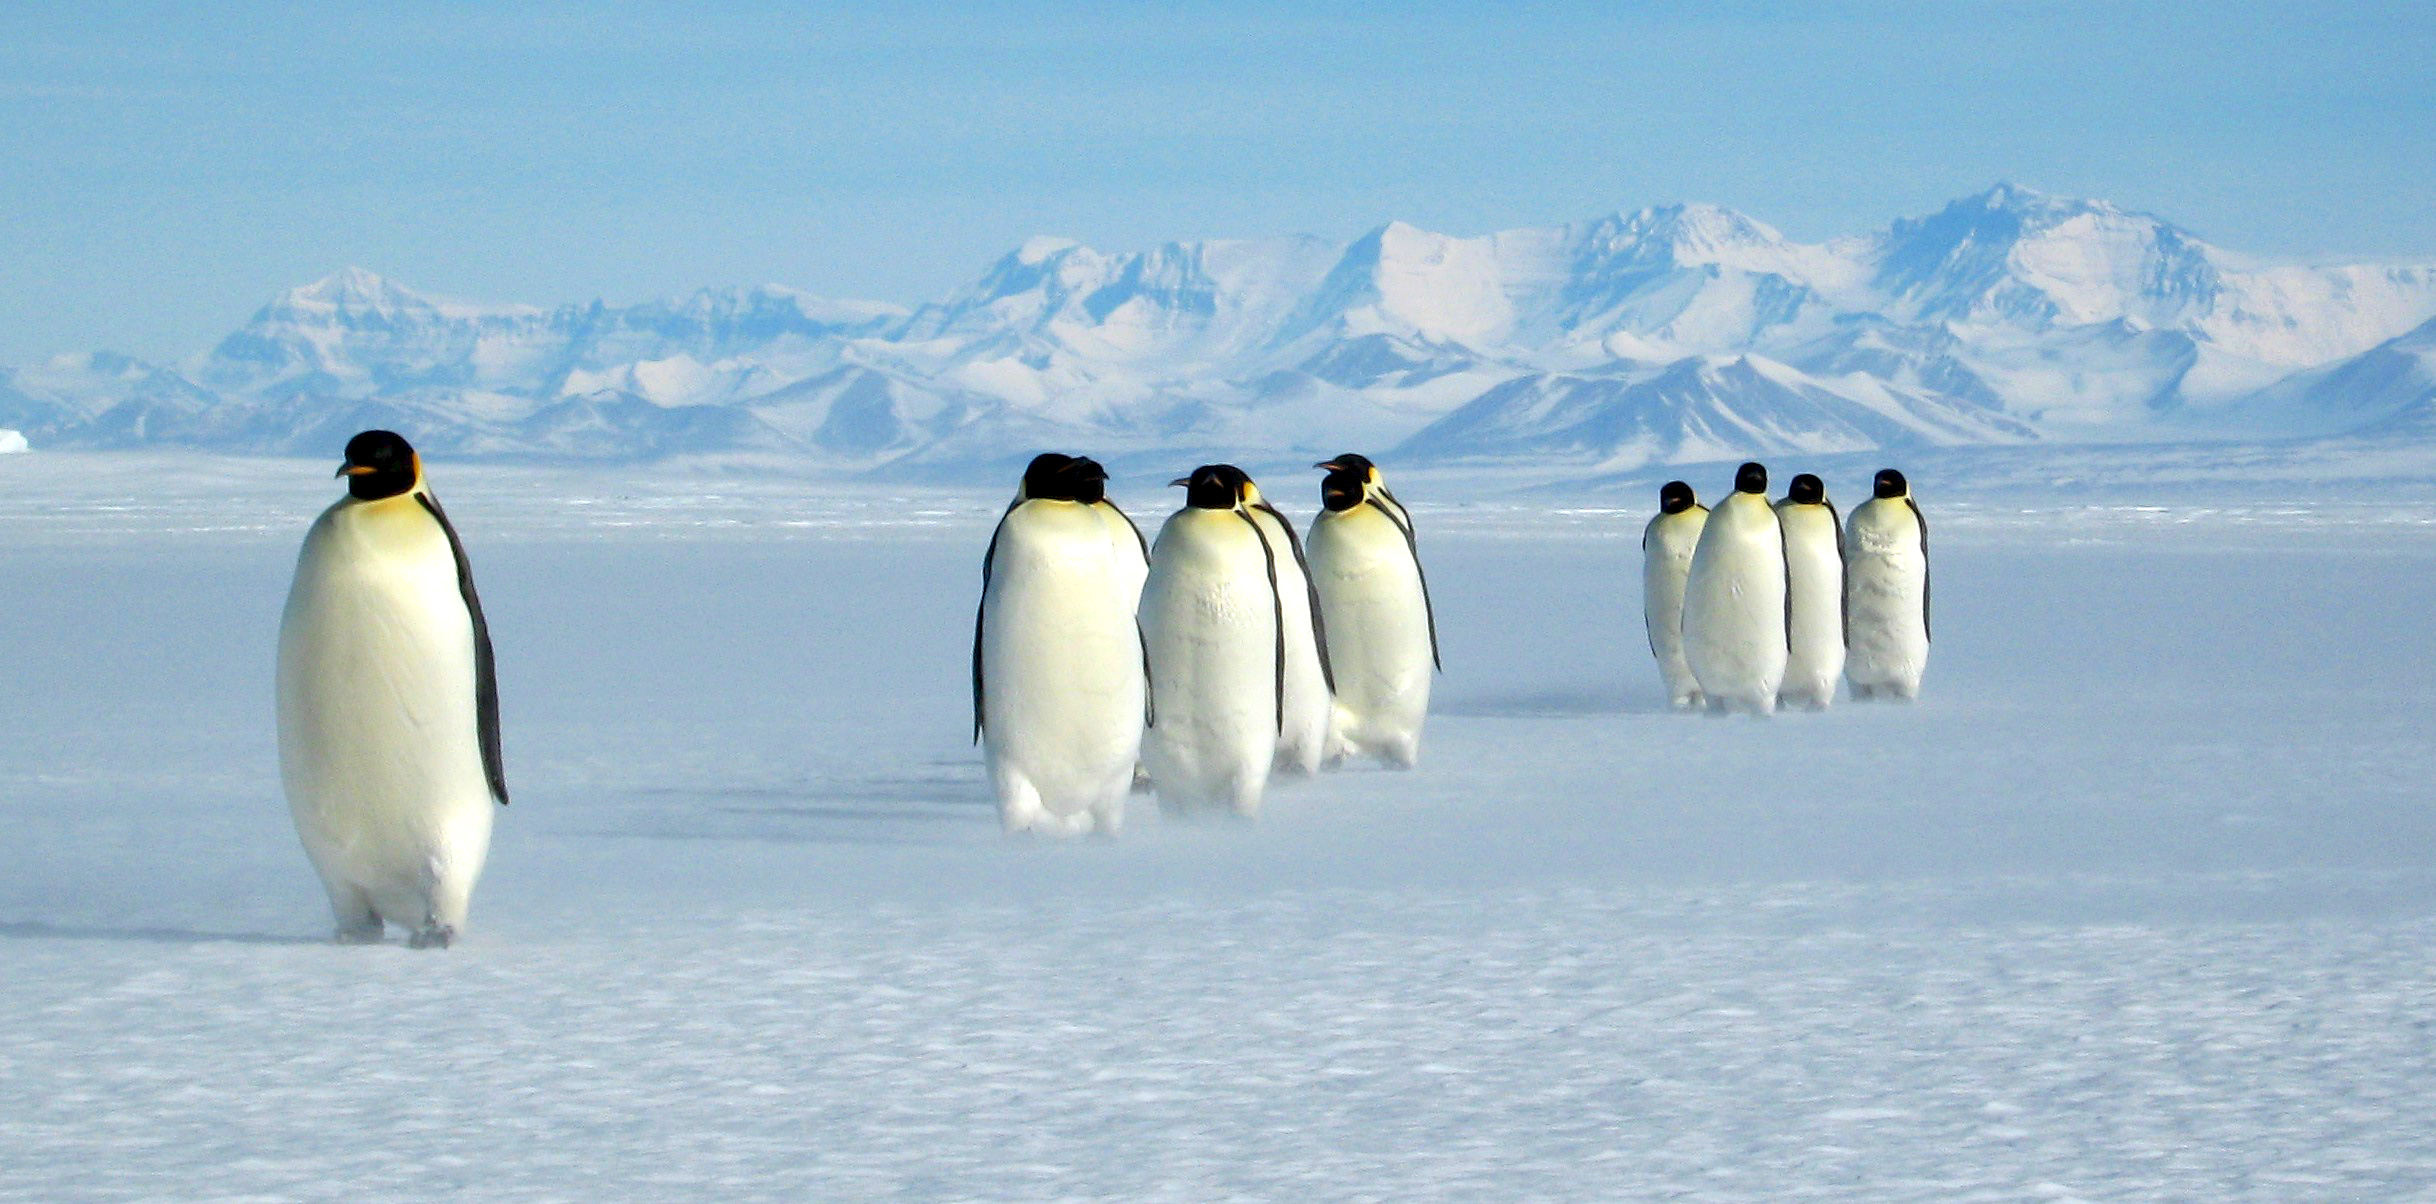 Group of penguins in Antarctica